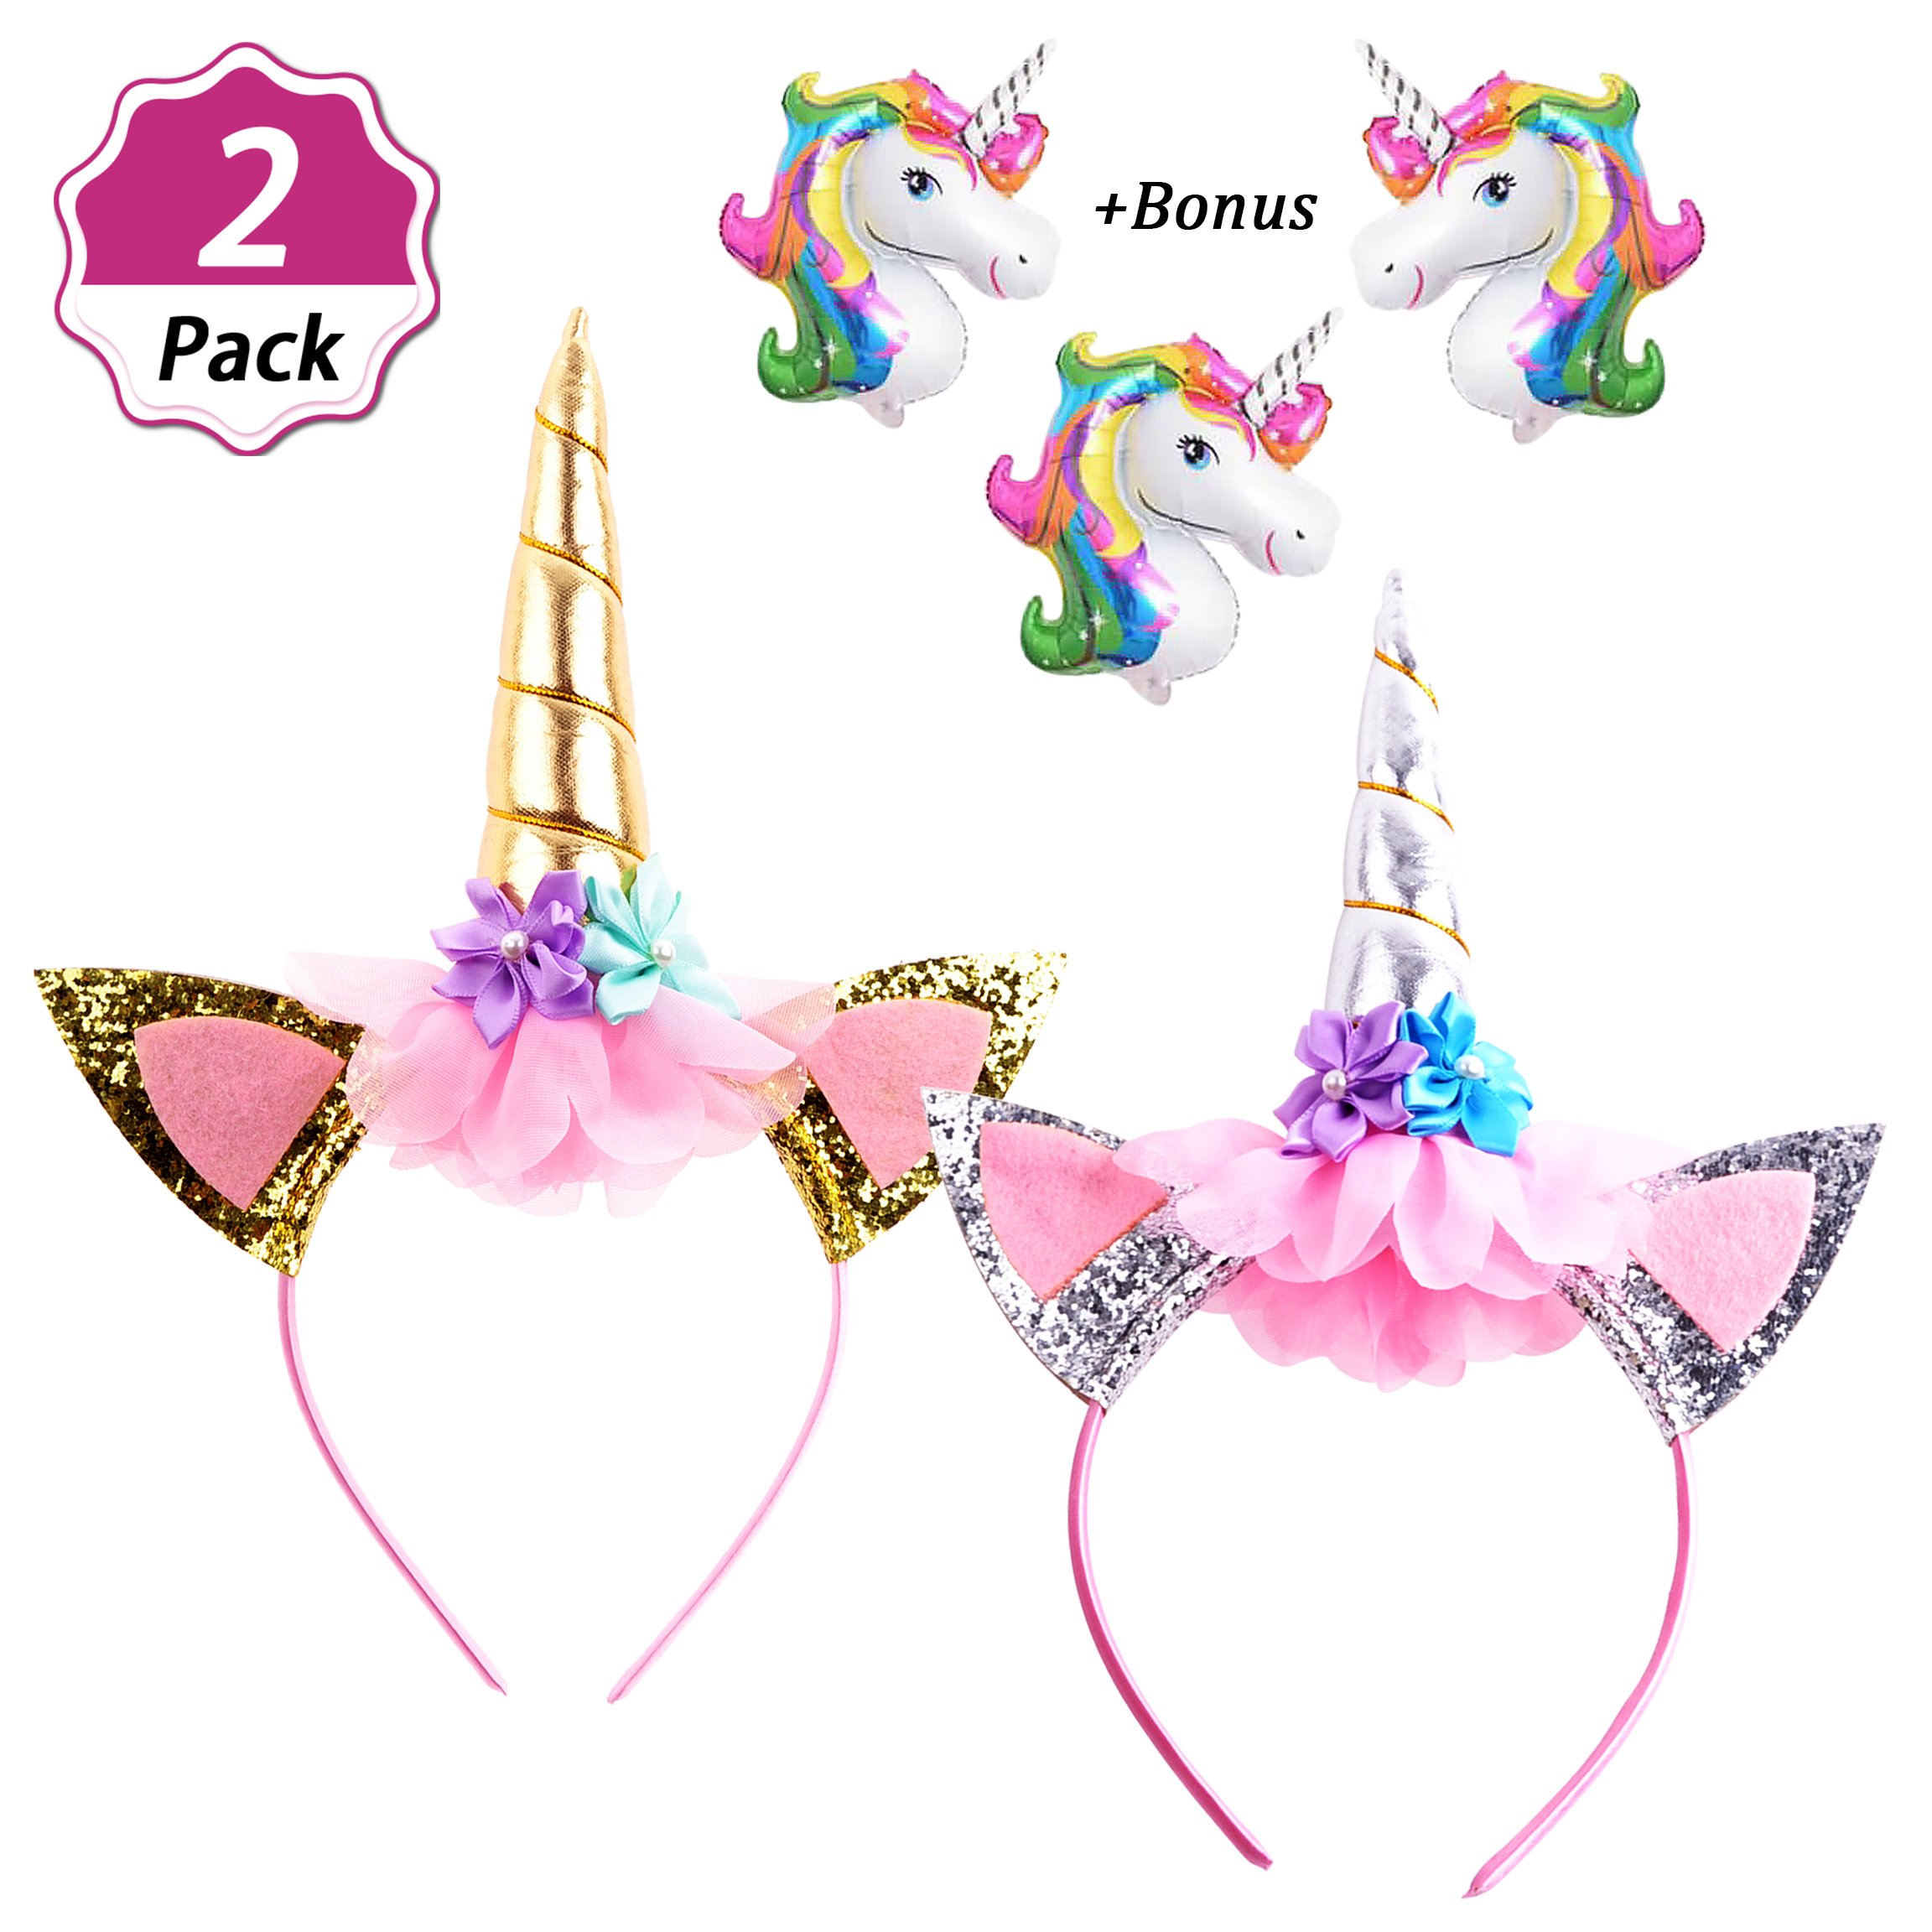 DaisyFormals Unicorn Headband for Girls Unicorn Party,2 PCS Gold and Silver